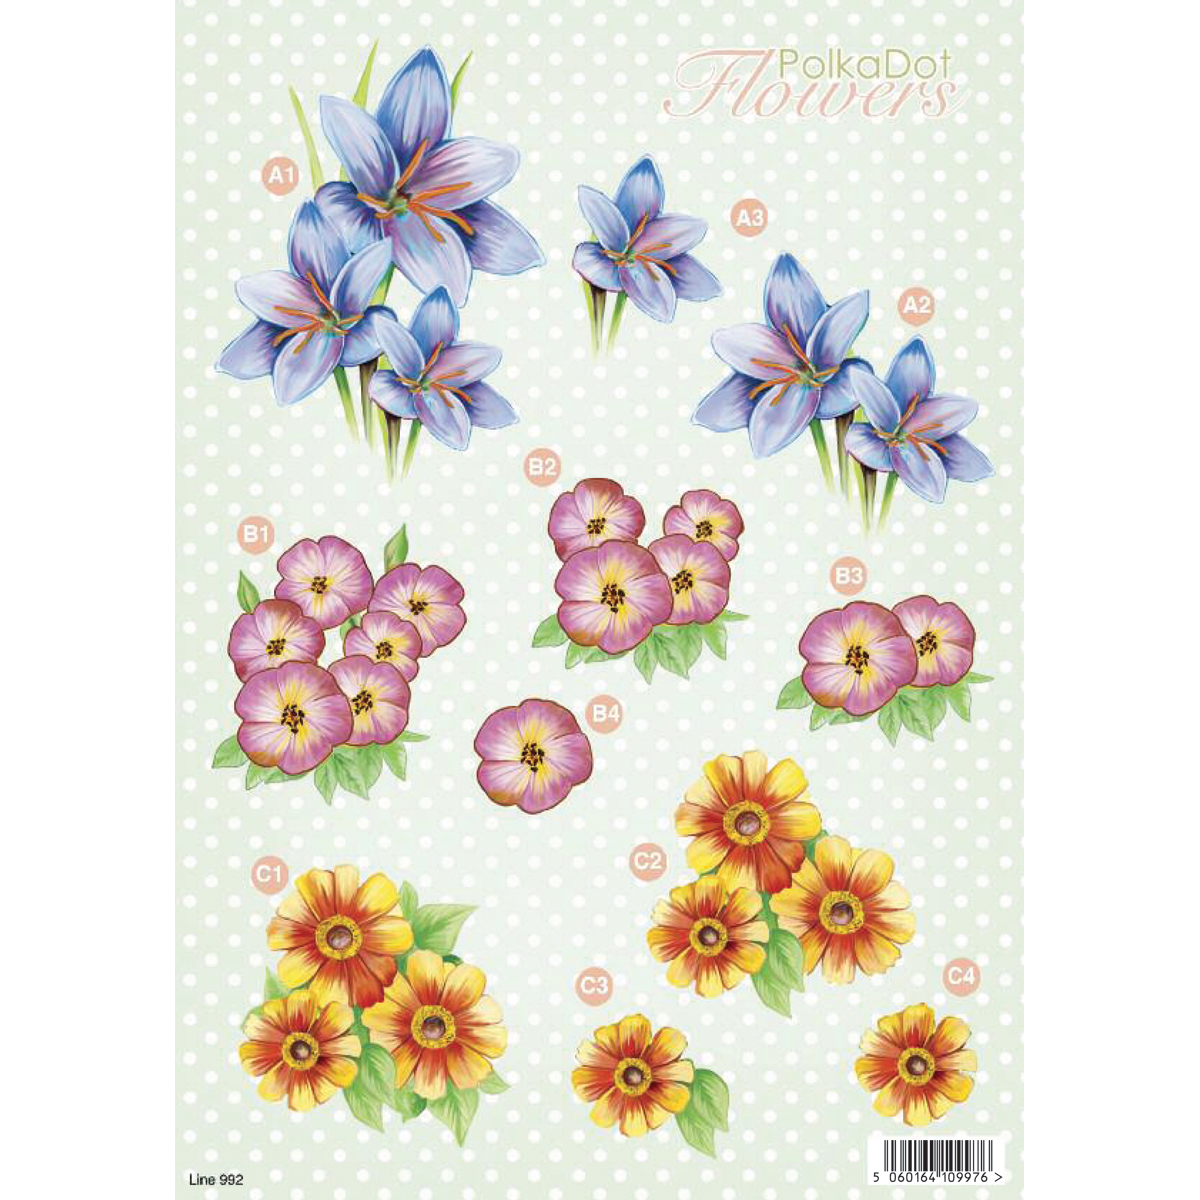 "3D Die-Cut Decoupage Sheet 8.3""X11.69""-Polka Dot Flowers: Blue Lily & Daisy"